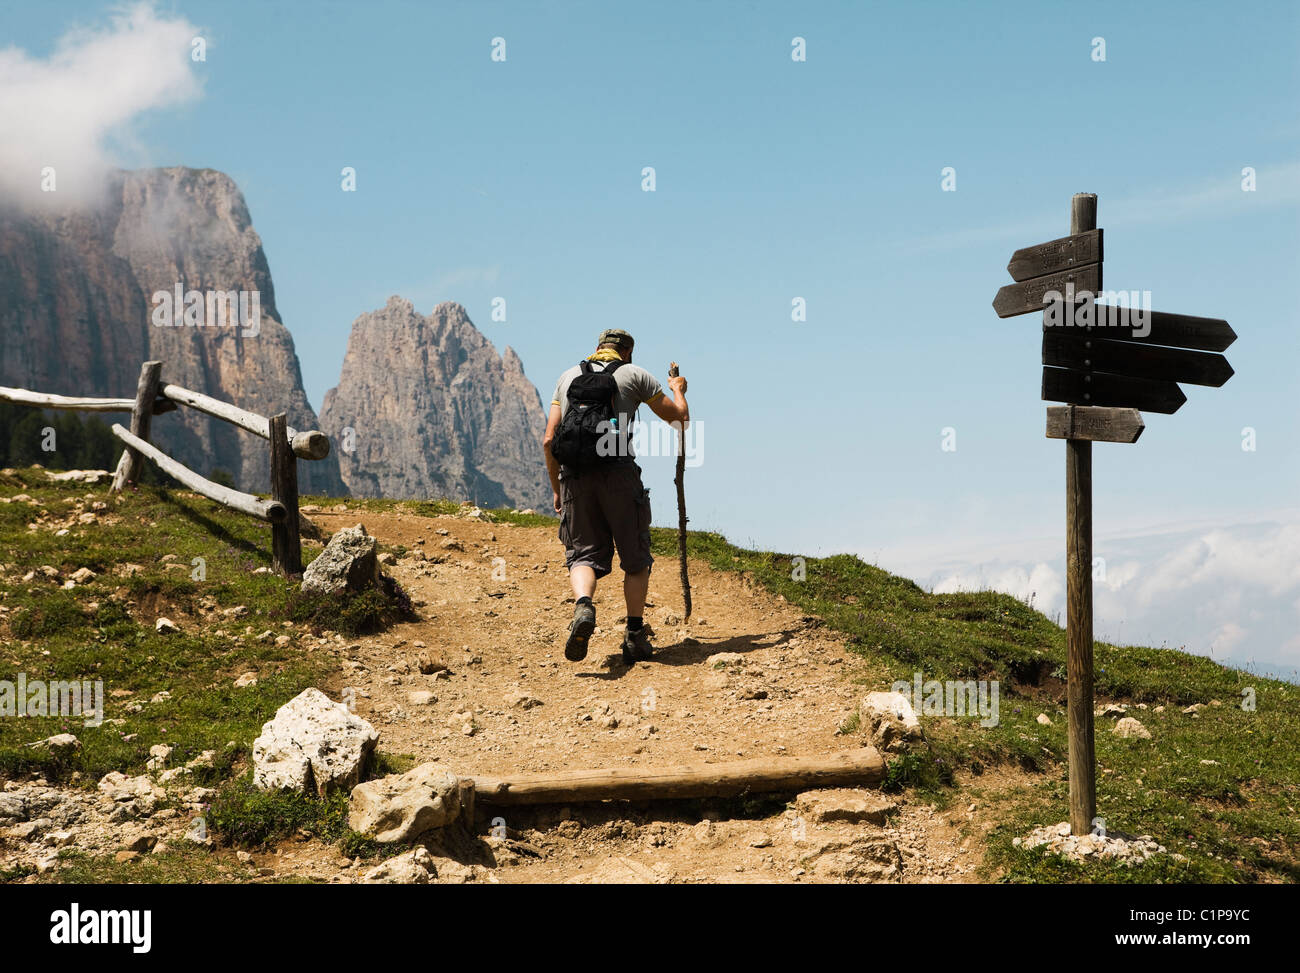 Backpacker on mountain trail Stock Photo